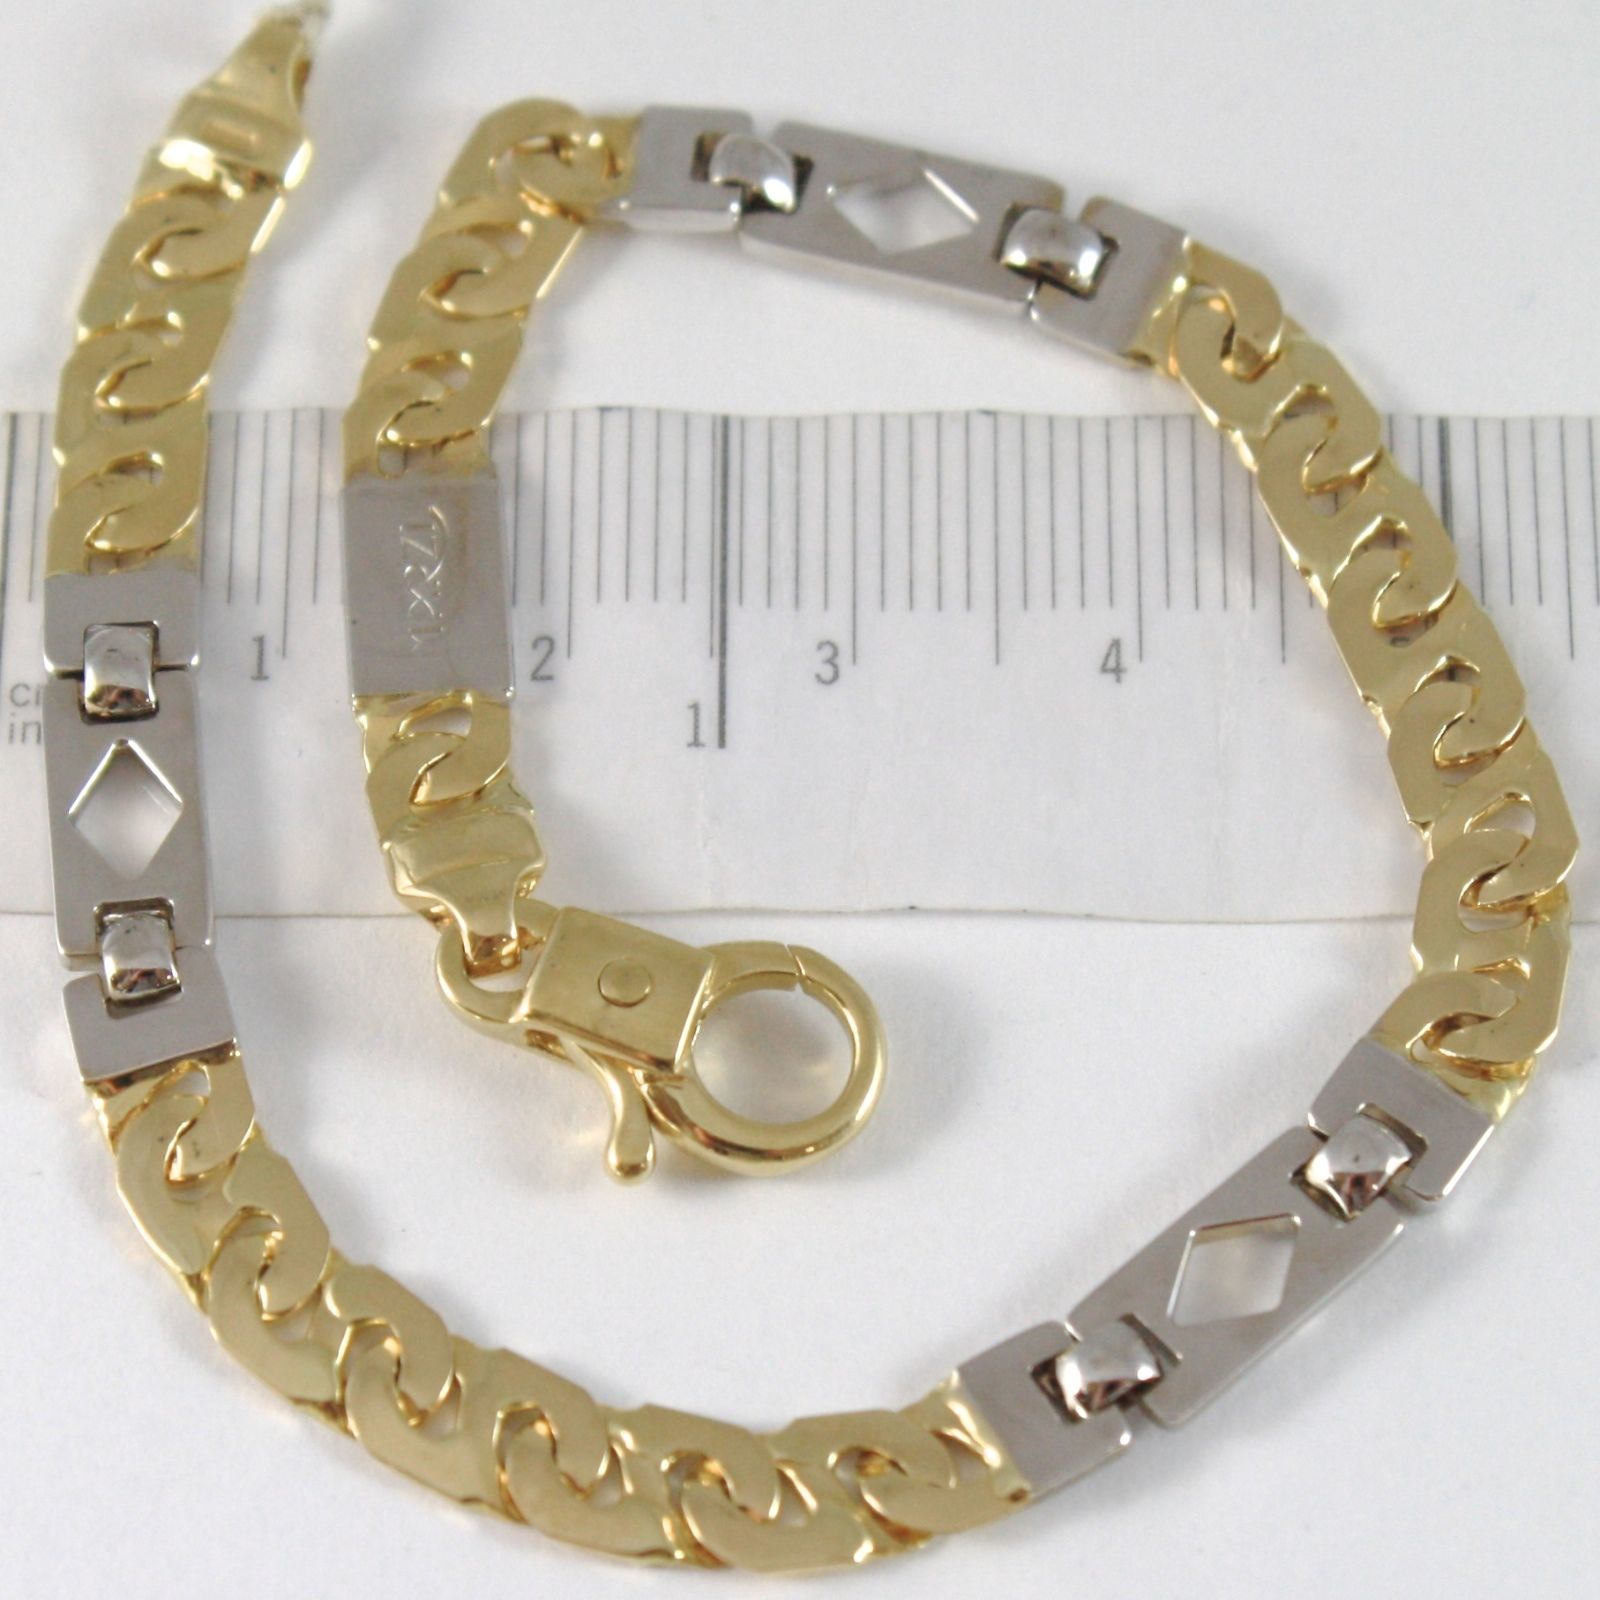 BRACELET YELLOW GOLD WHITE 750 18K, CROSSPIECE AND SQUARES ALTERNATING, 21 CM